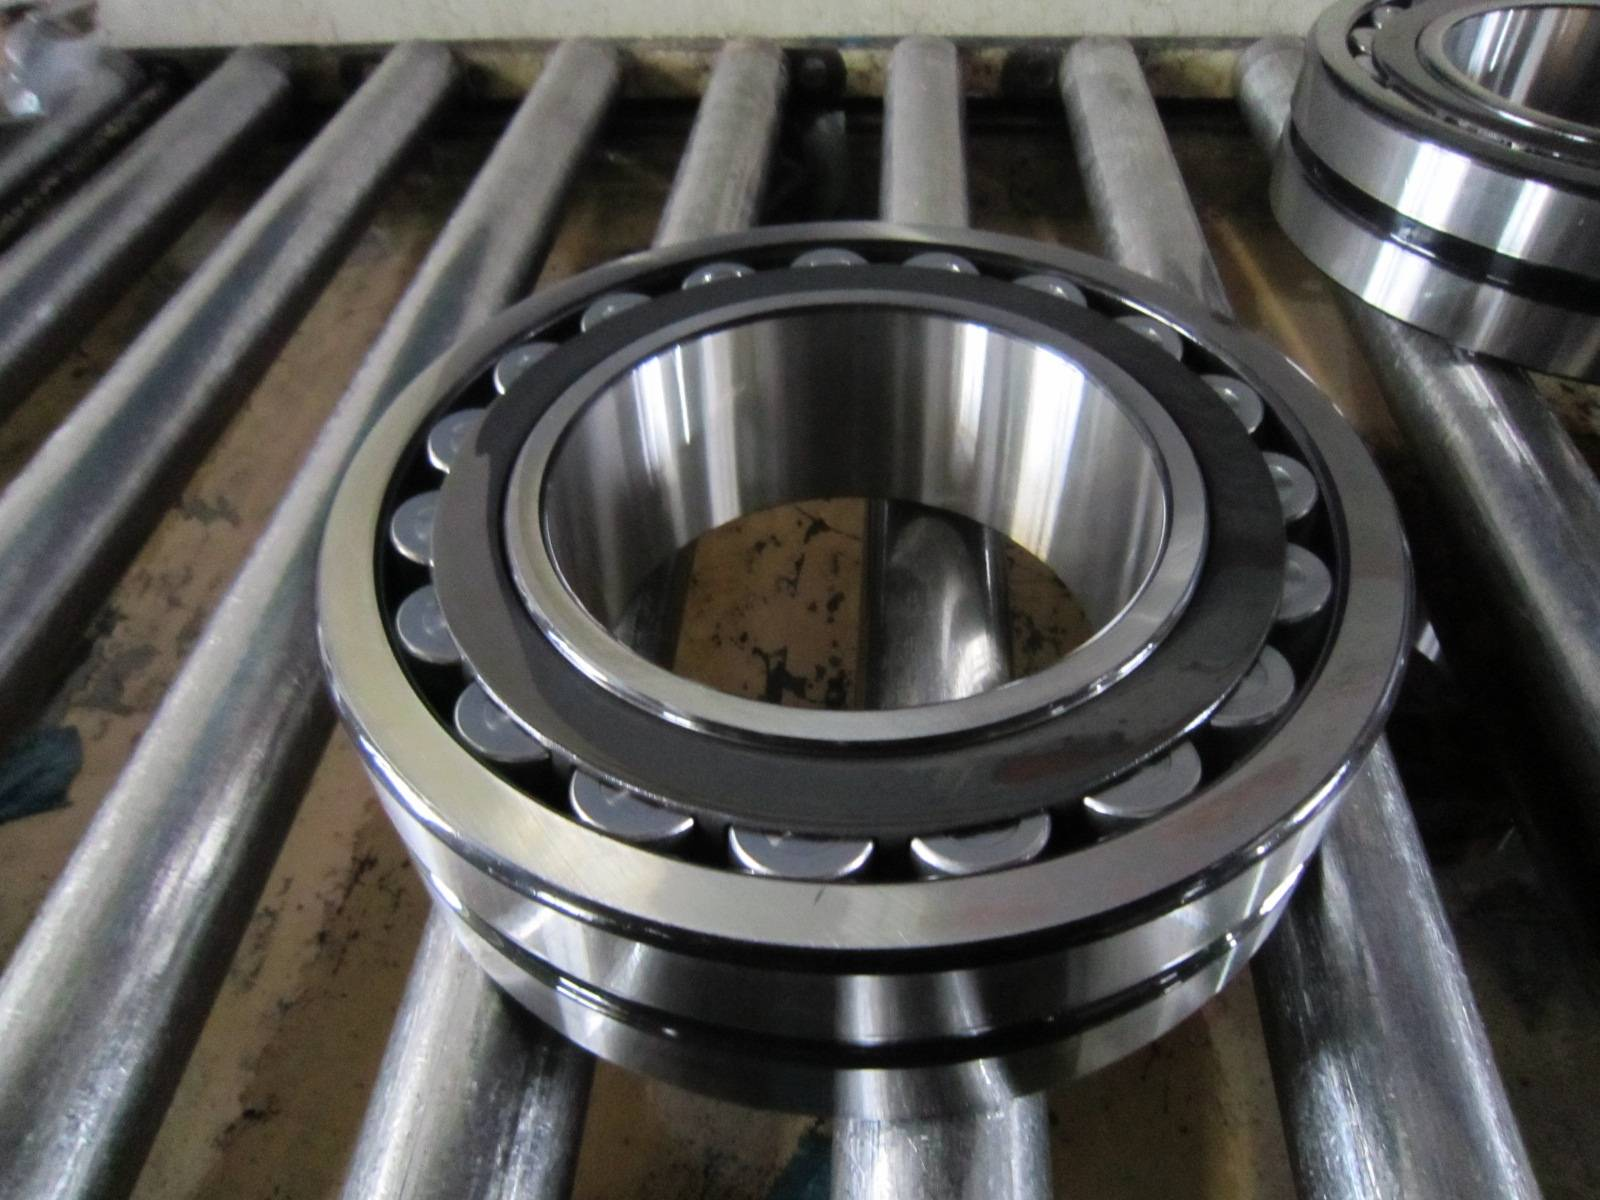 672736C3F3K2, can be separated from the multi row cylindrical roller bearings